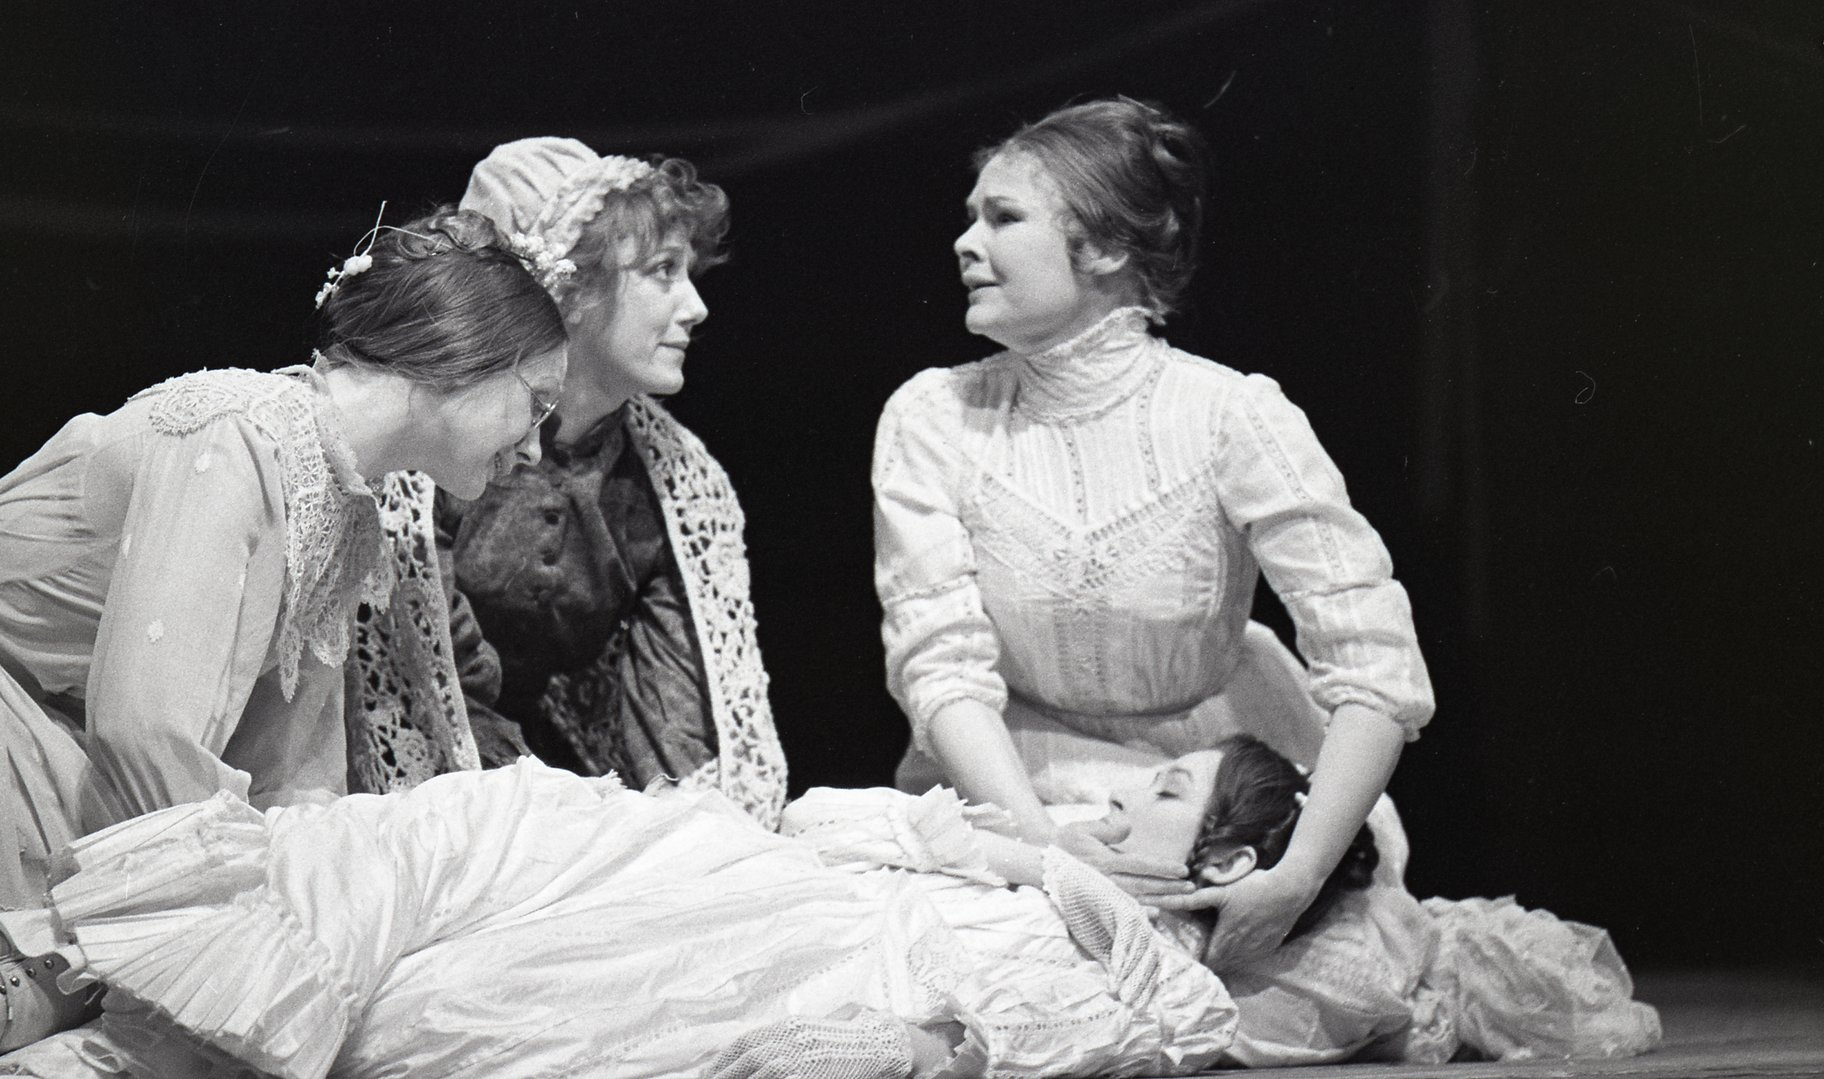 Three women surrounded a fainted woman, dressed in white.